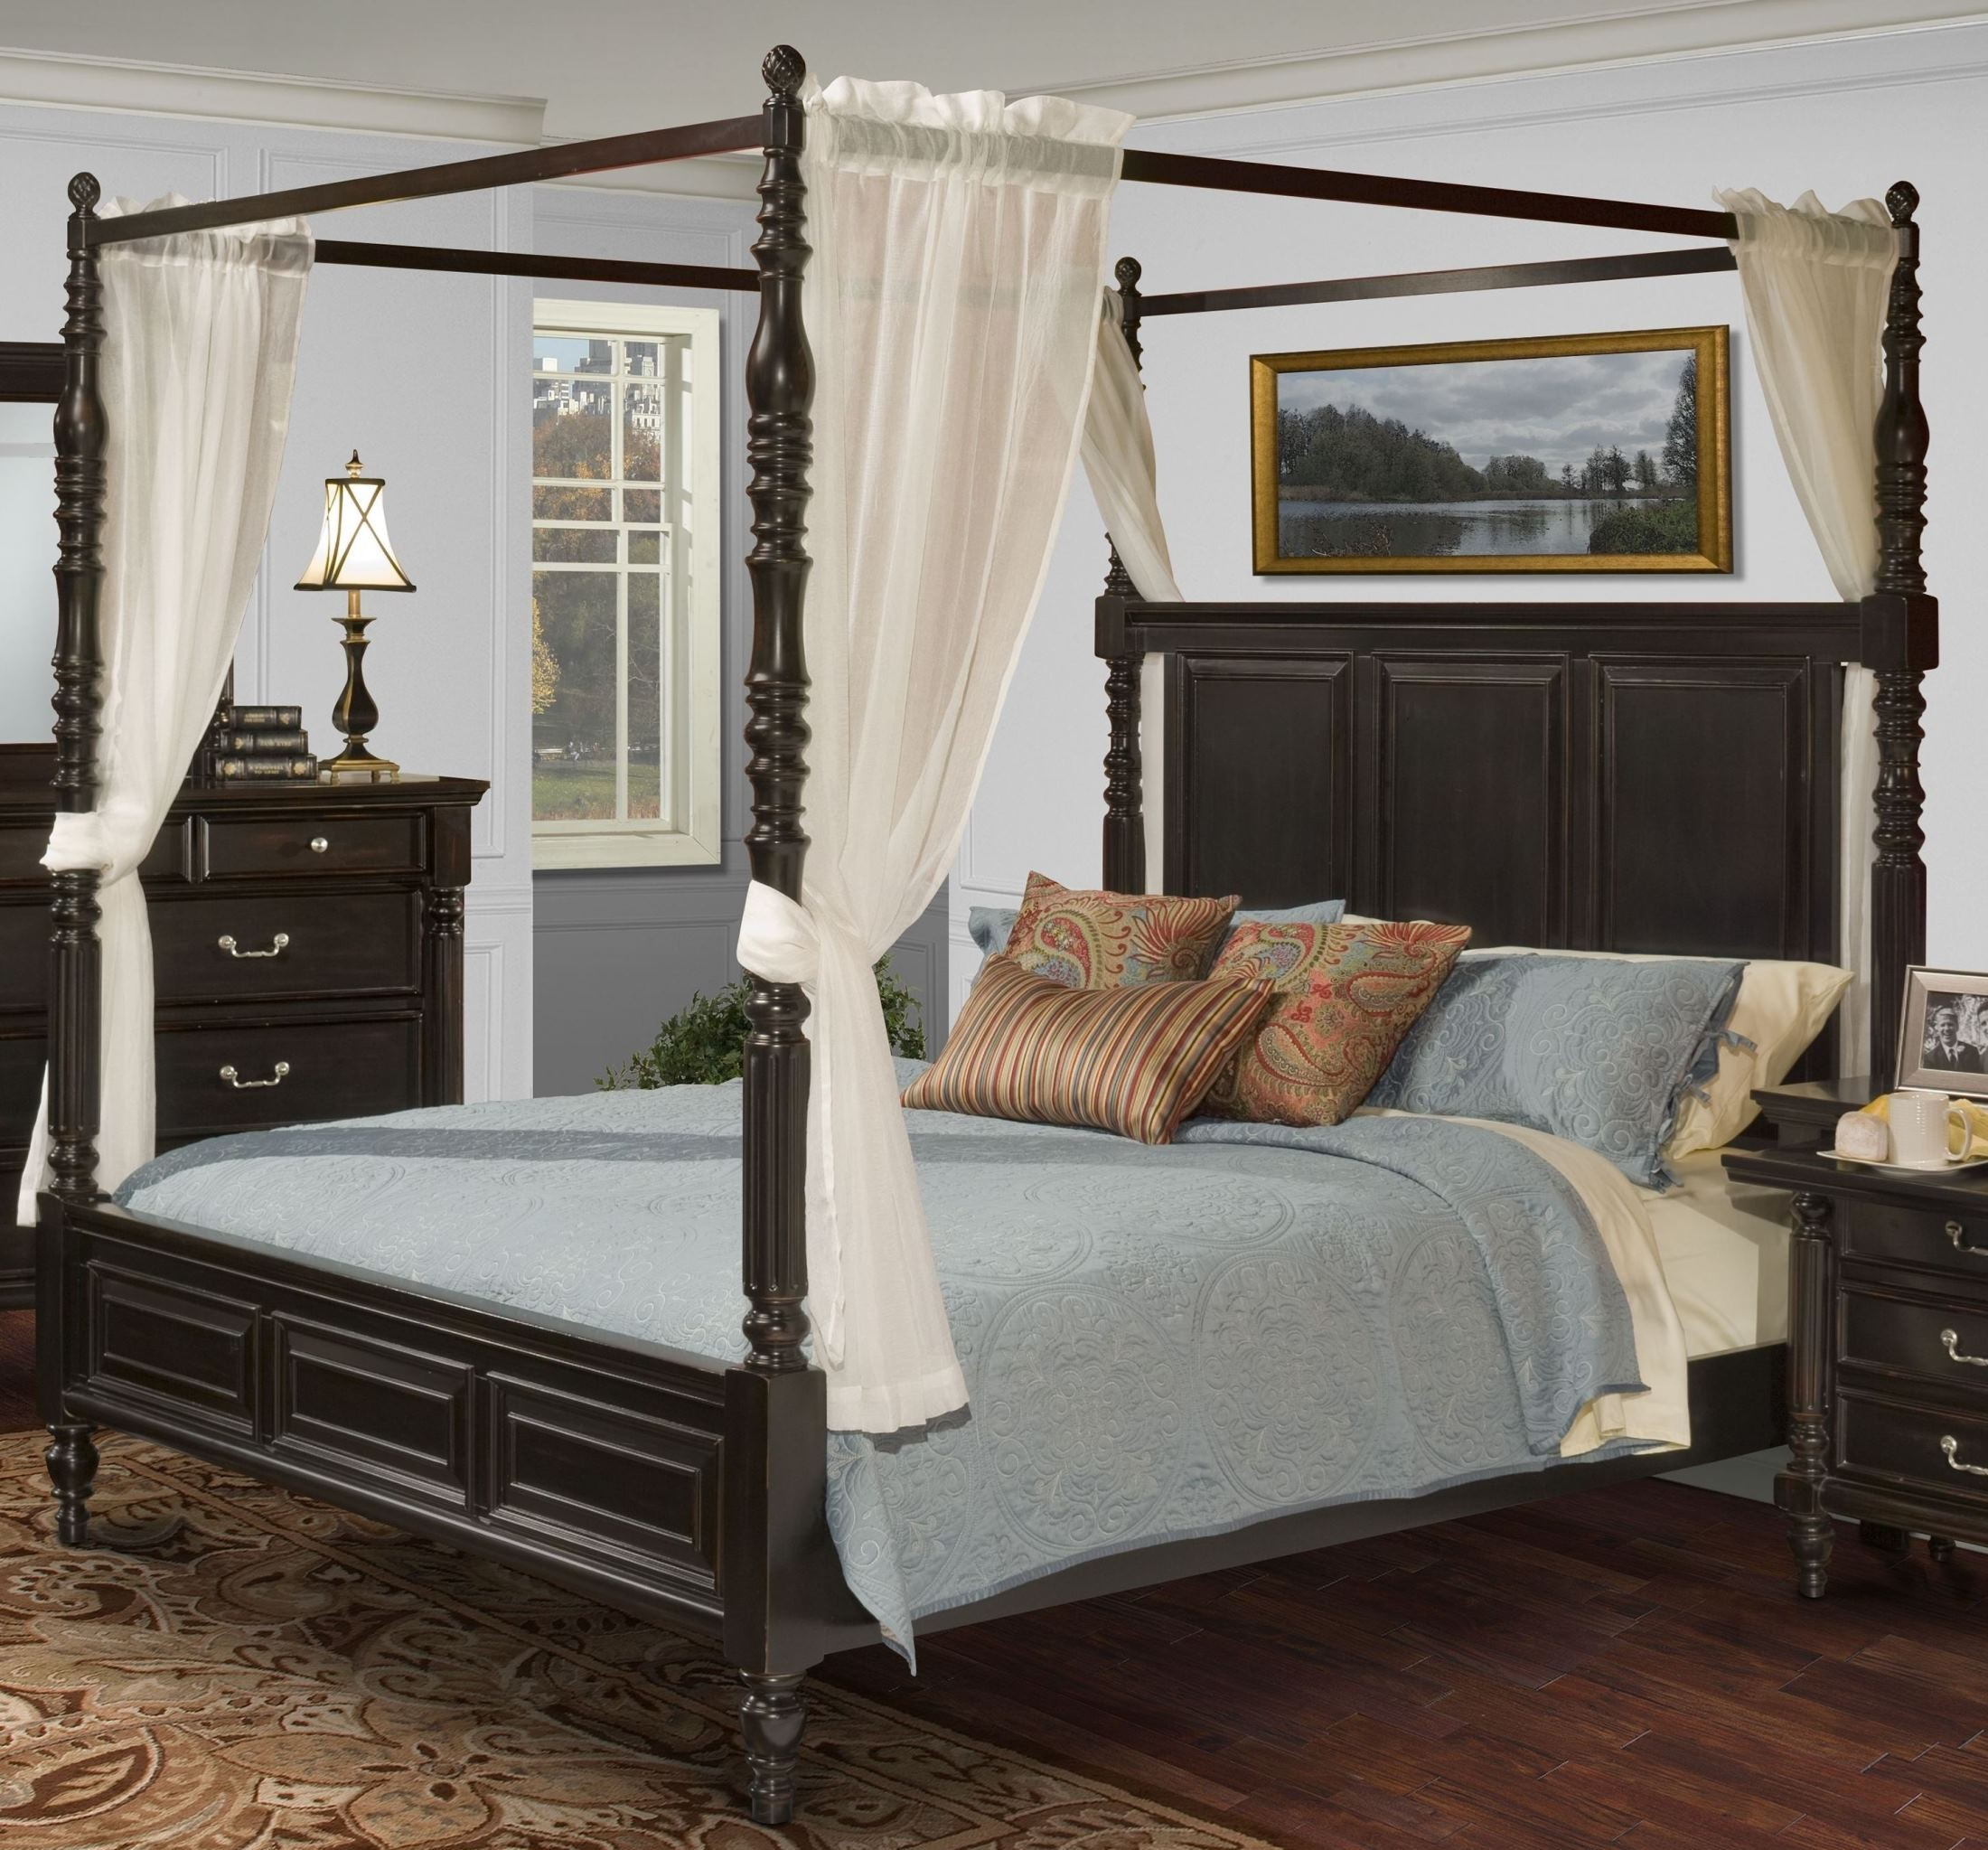 Martinique Rubbed Black King Canopy Bed With Drapes From